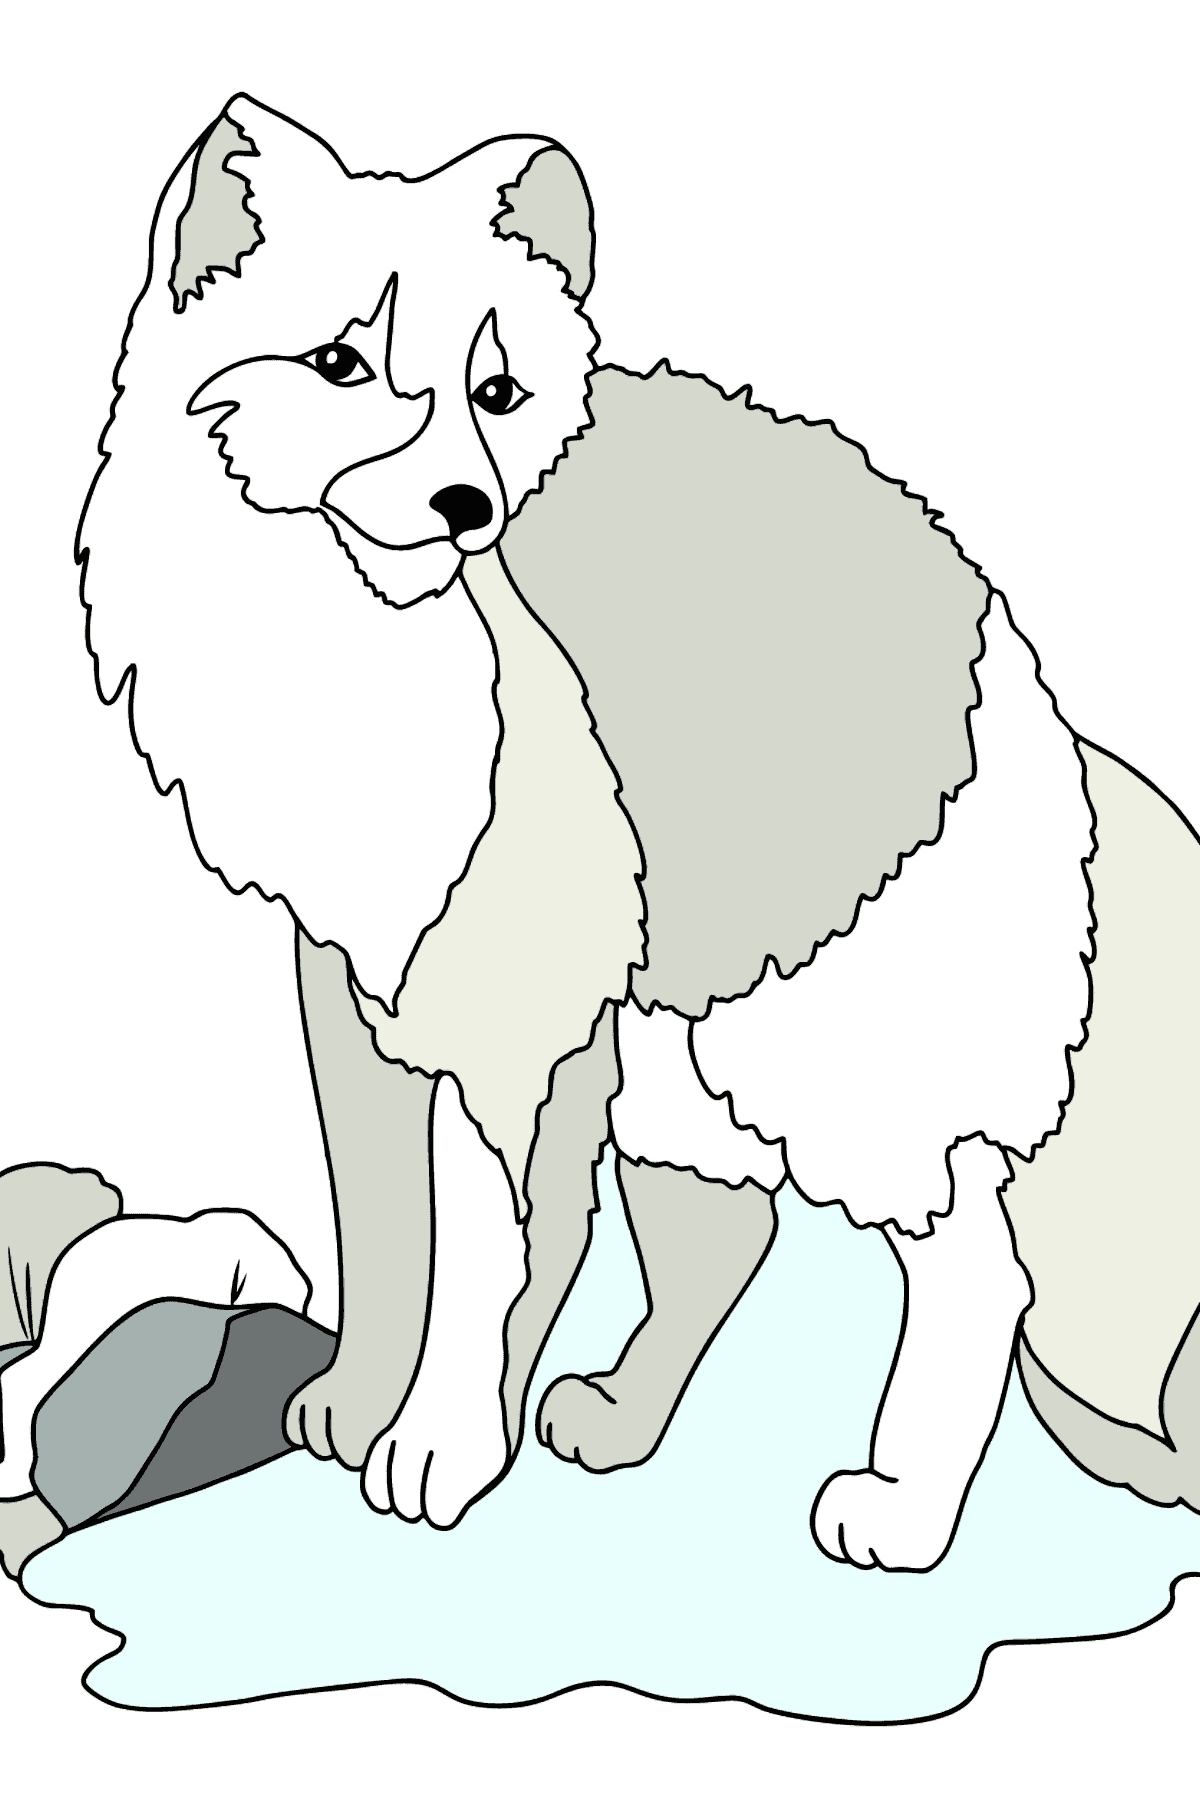 Coloring Page - A White Arctic Fox - Coloring Pages for Kids